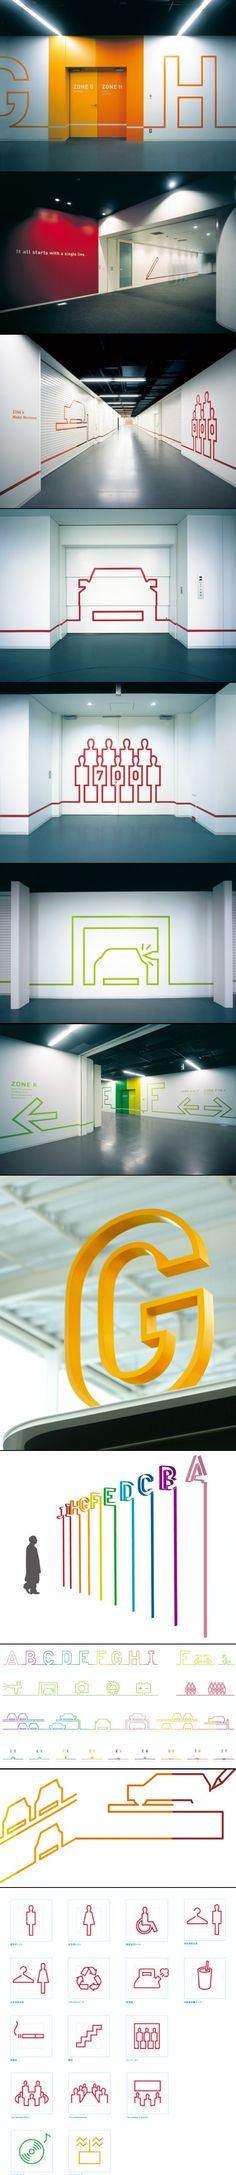 A simple line of color goes a long way! Nissan Design Center, Japan by Hiromura Design Office 2006 Signage Display, Signage Design, Branding Design, Office Signage, Office Branding, Environmental Graphic Design, Environmental Graphics, Desgin, Navigation Design